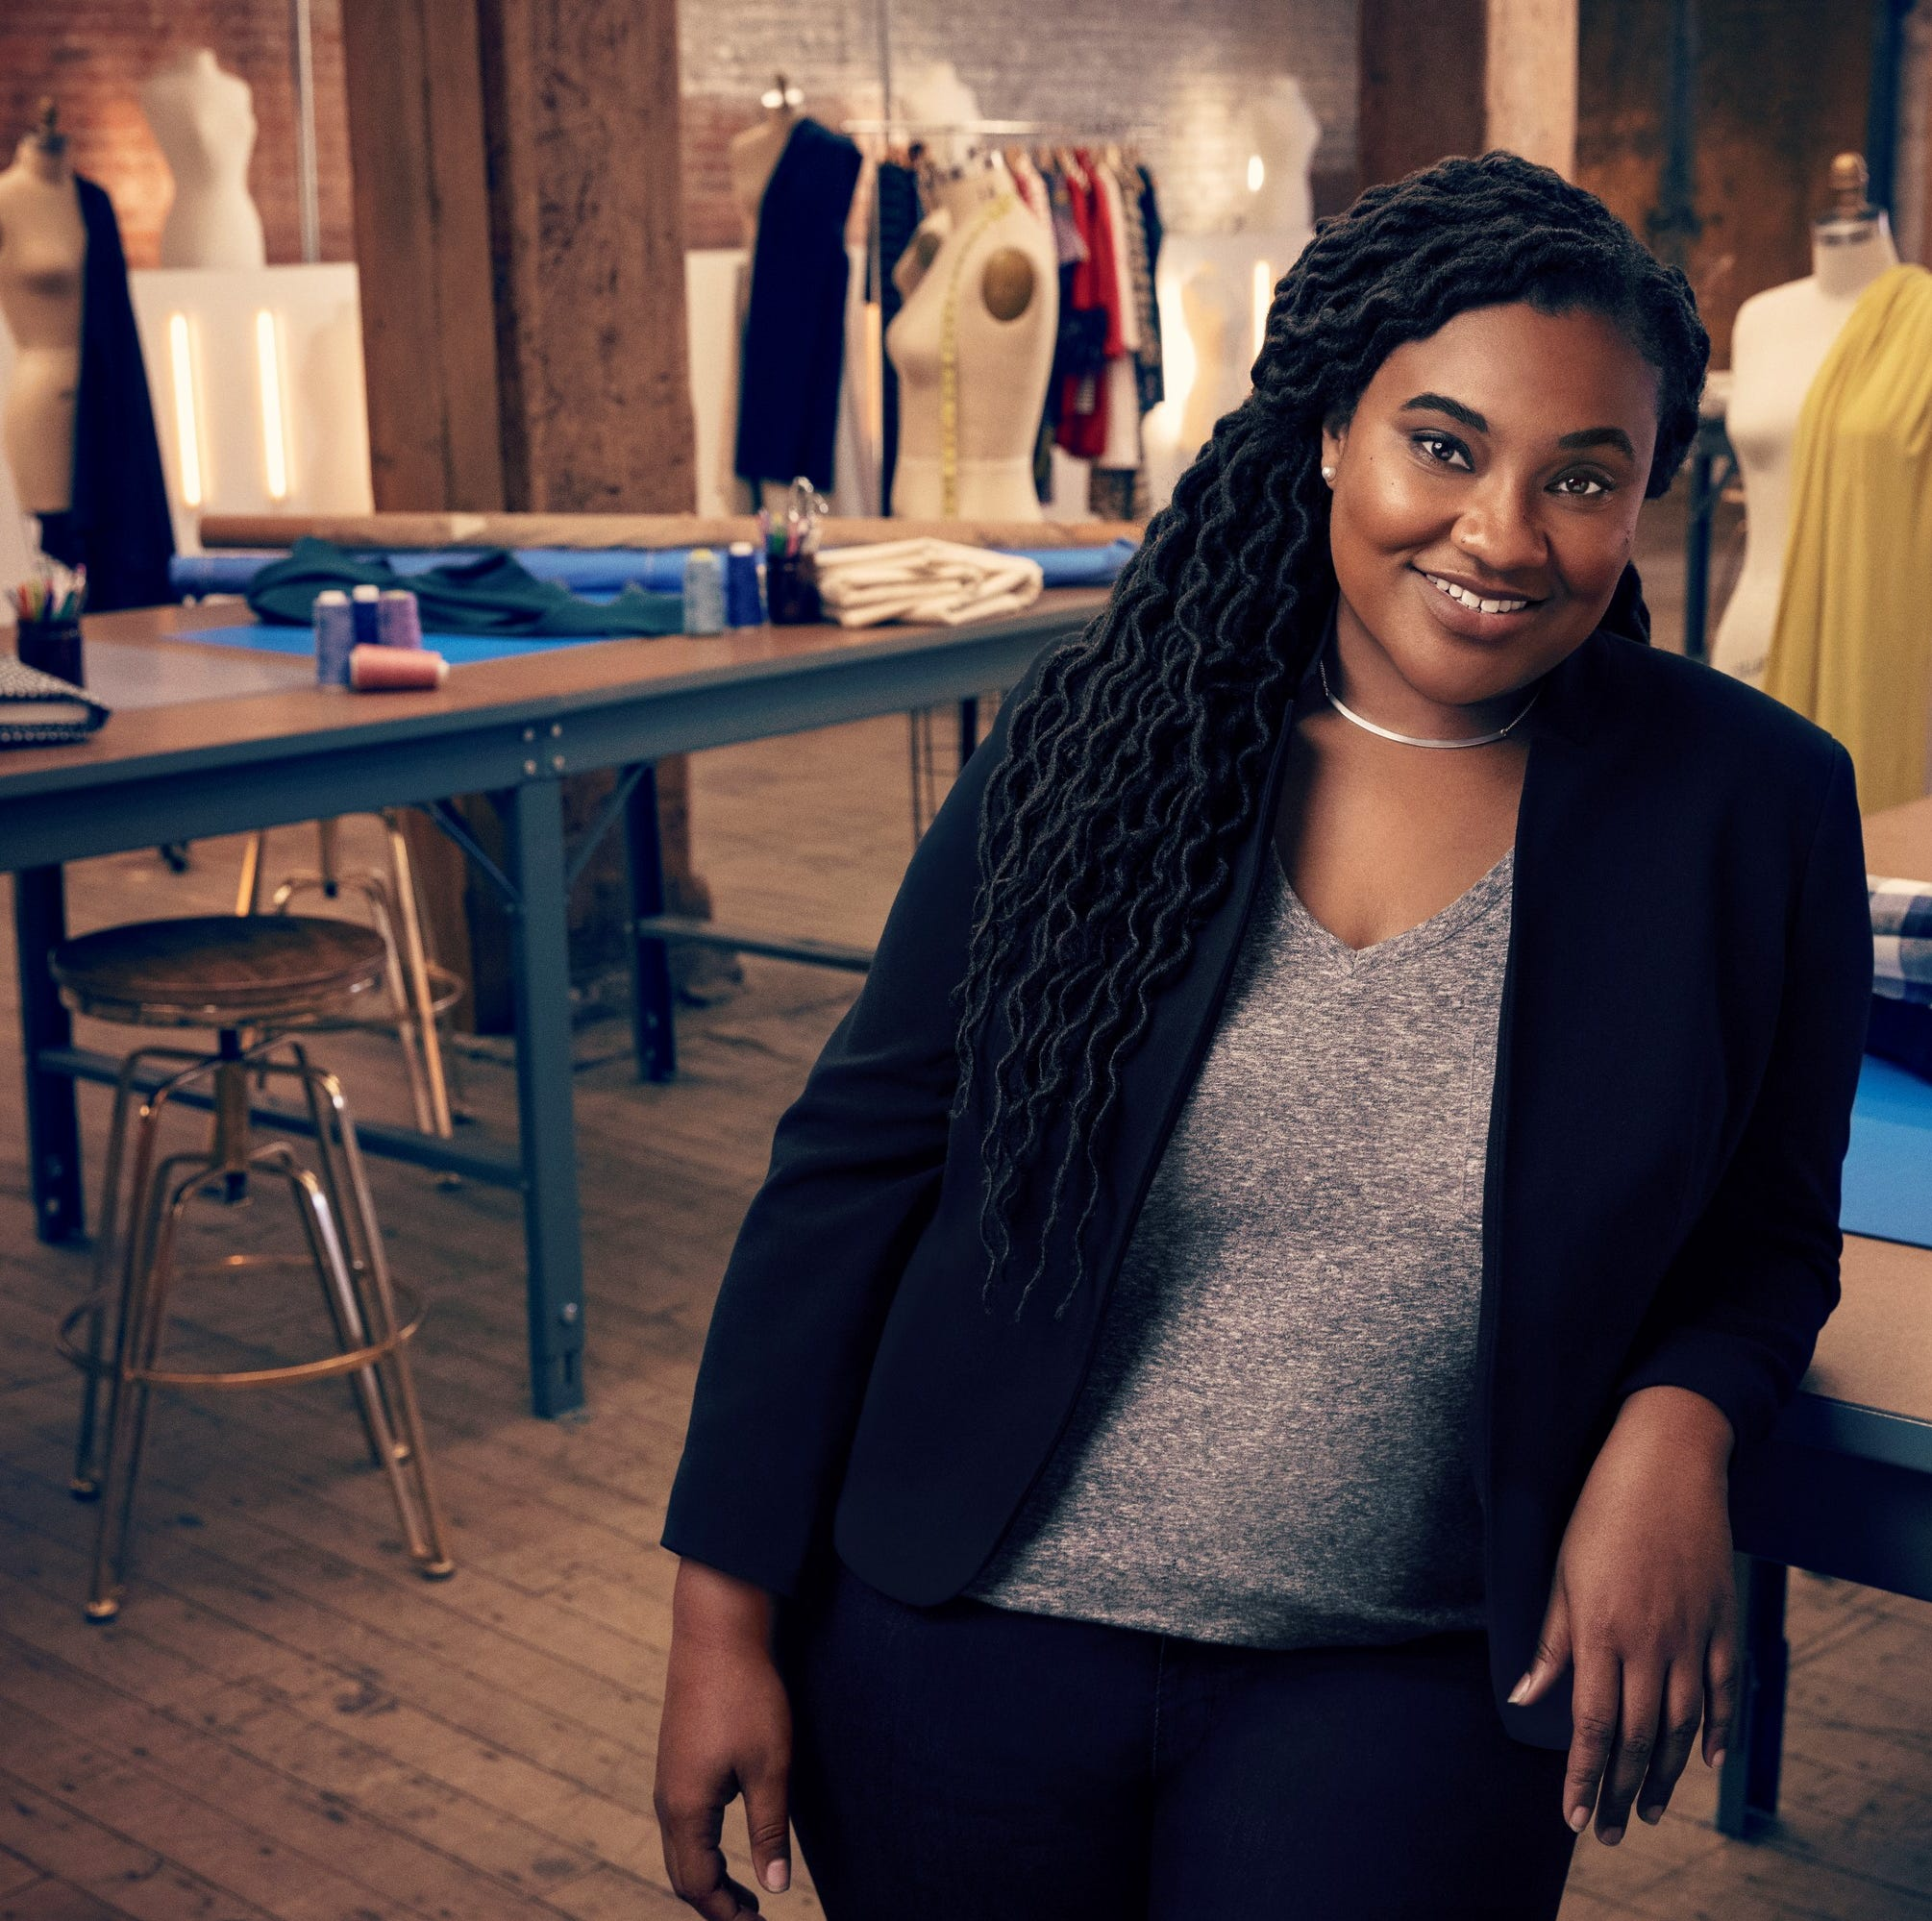 Meet the Louisville fashion designer starring on Bravo's 'Project Runway'